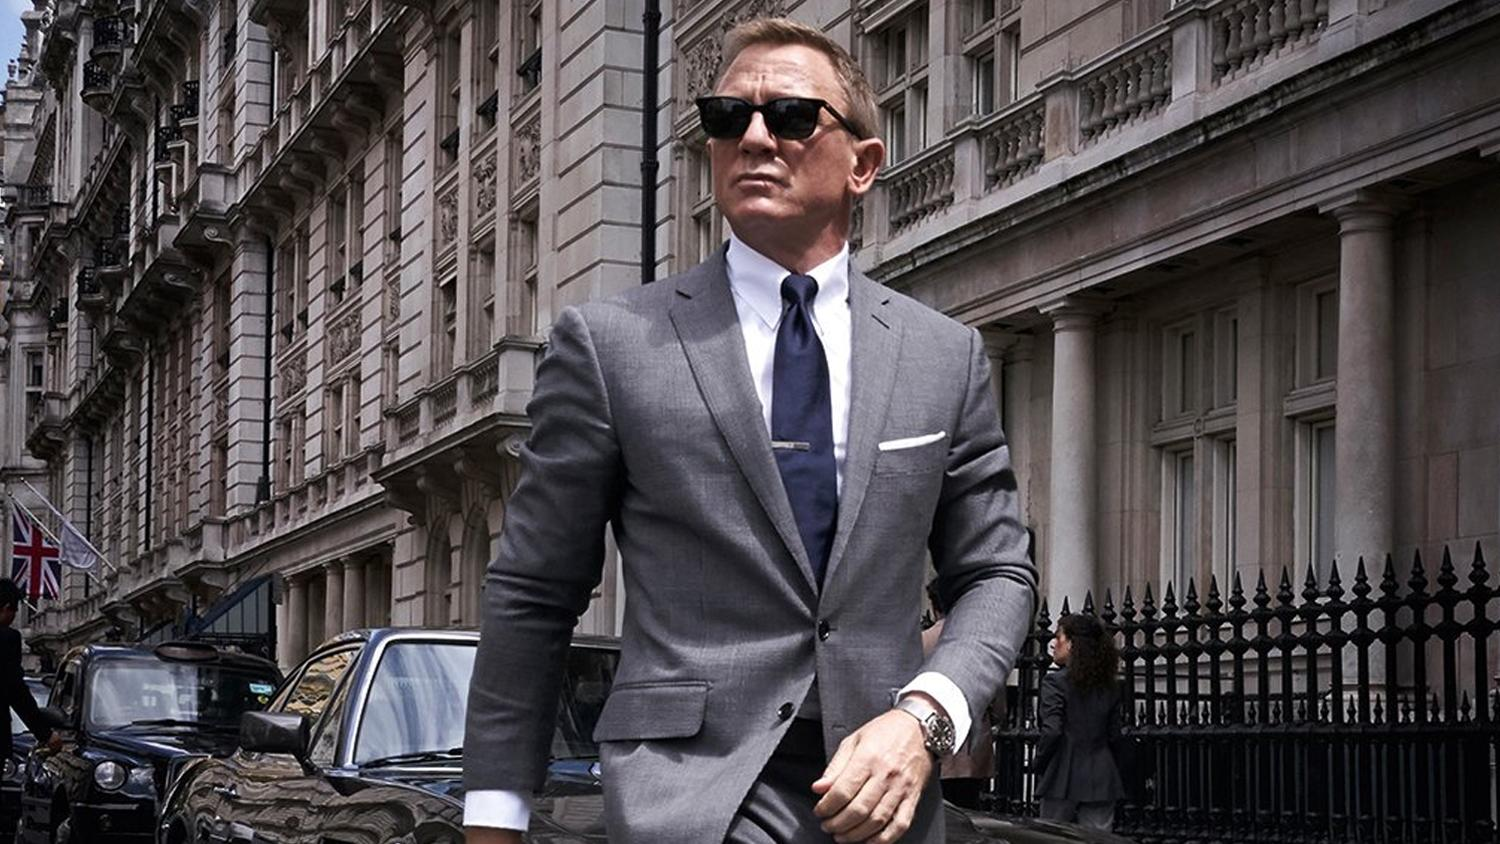 James Bond movie now filming in London